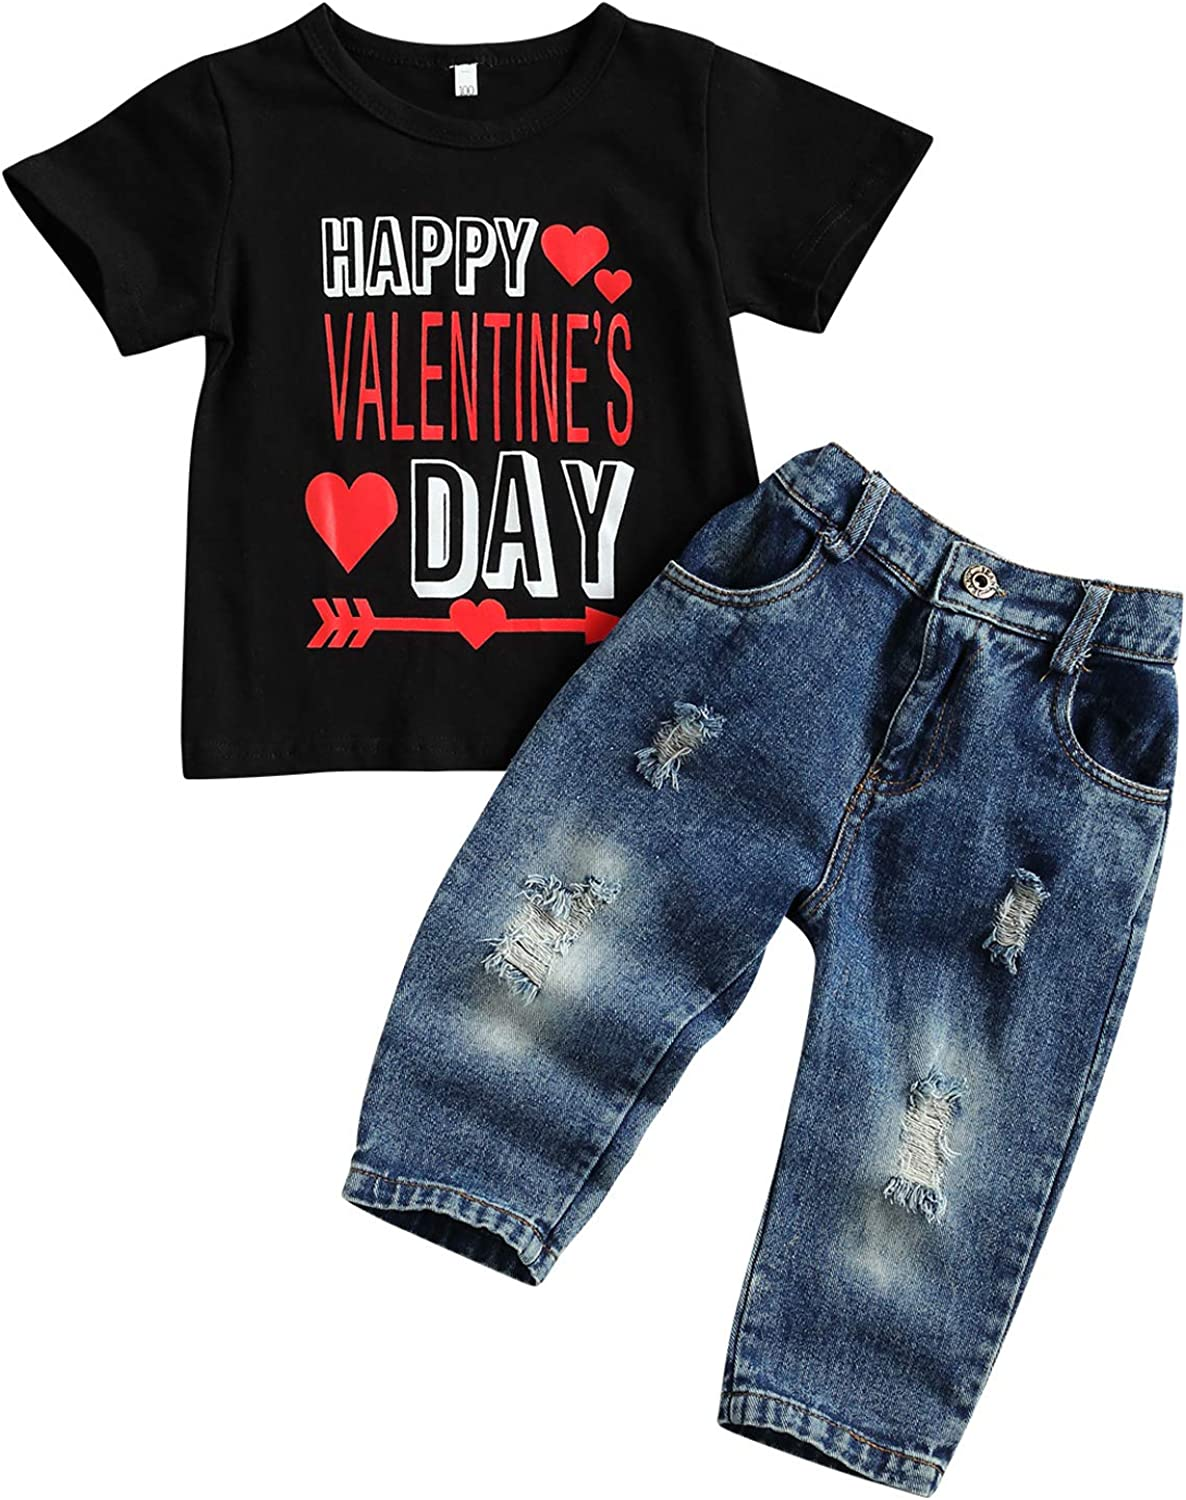 GOOCHEER Valentine's Day Toddler Boy Girl Outfit Short Sleeves Shirt Jeans Toddler Girl Boy Valentine's Day Clothes